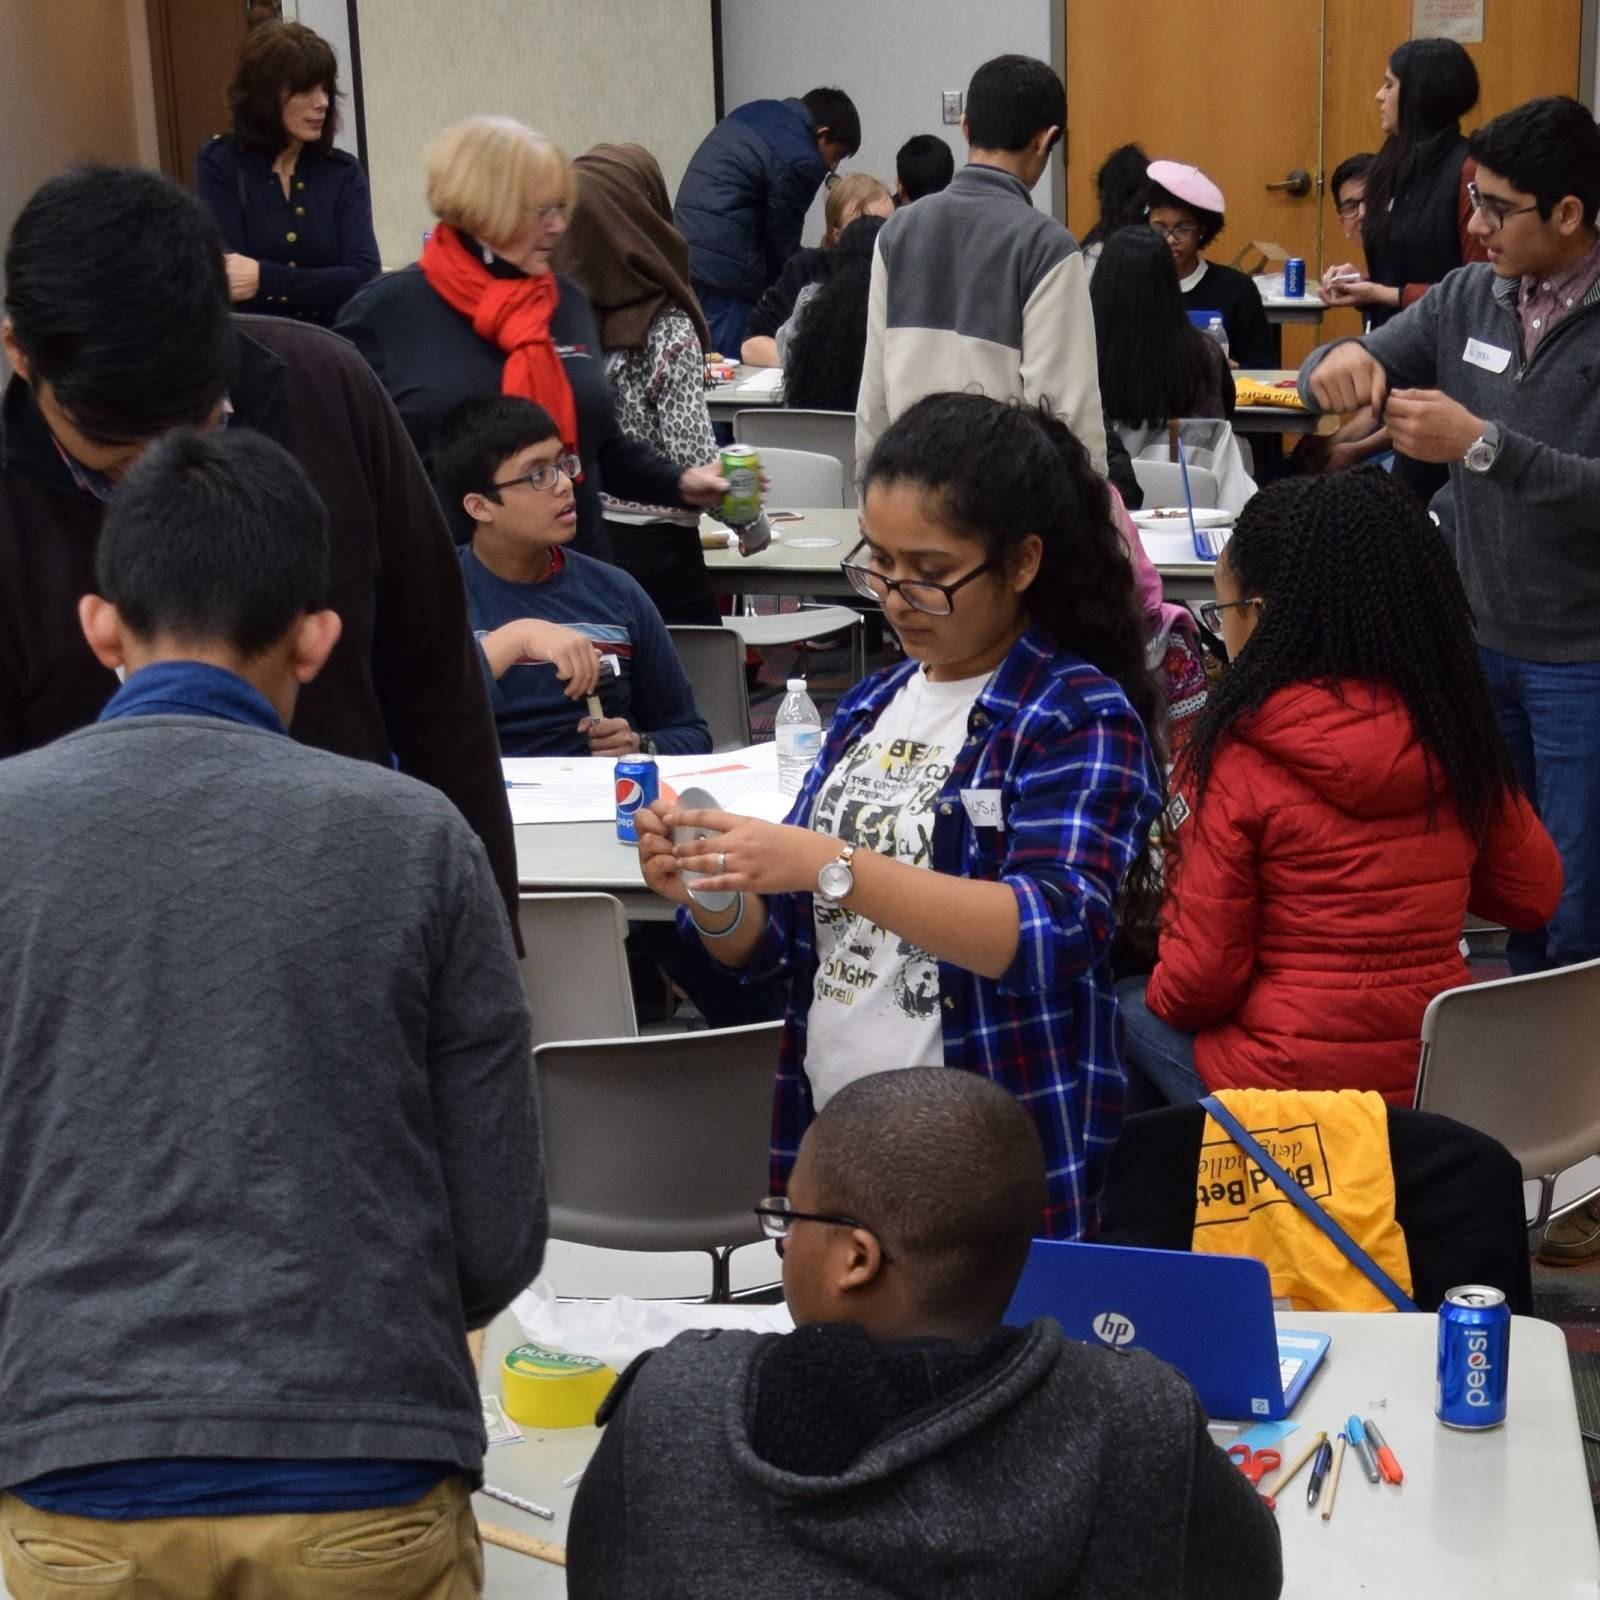 00021bde9c3376730a19_Piscataway_Library_-_Build_It_1.JPG